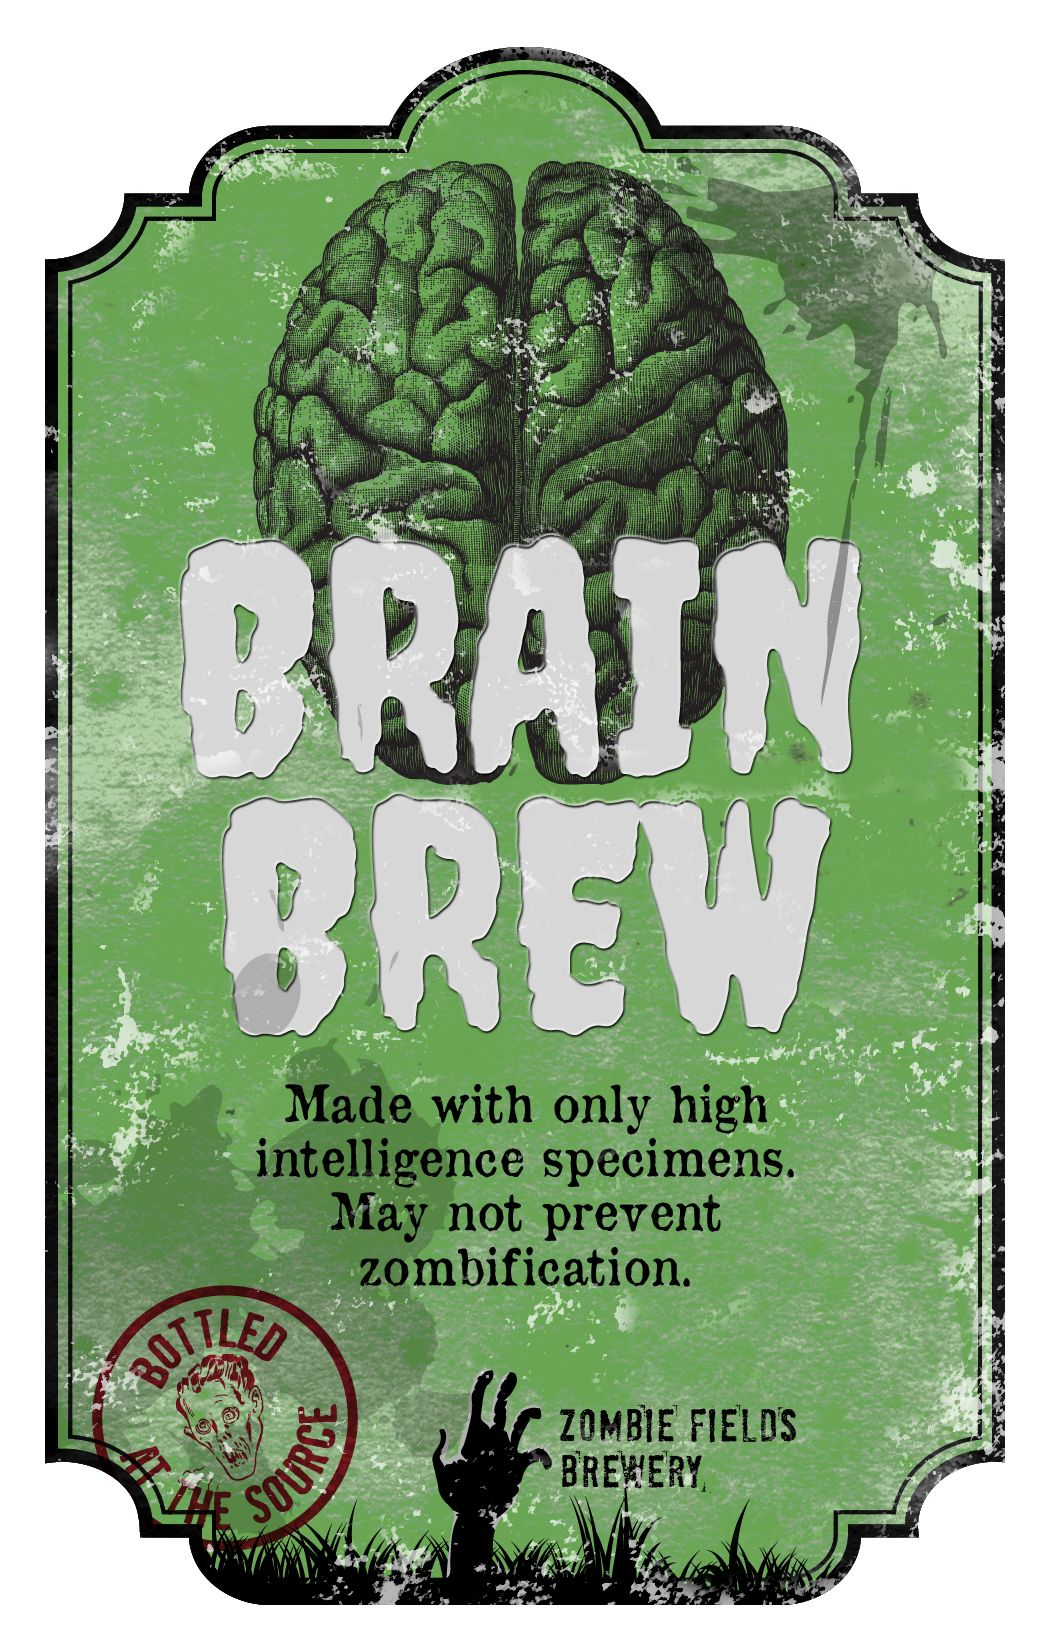 Brain Brew- local brewery support/ special lager? Red Rock or Wasatch?